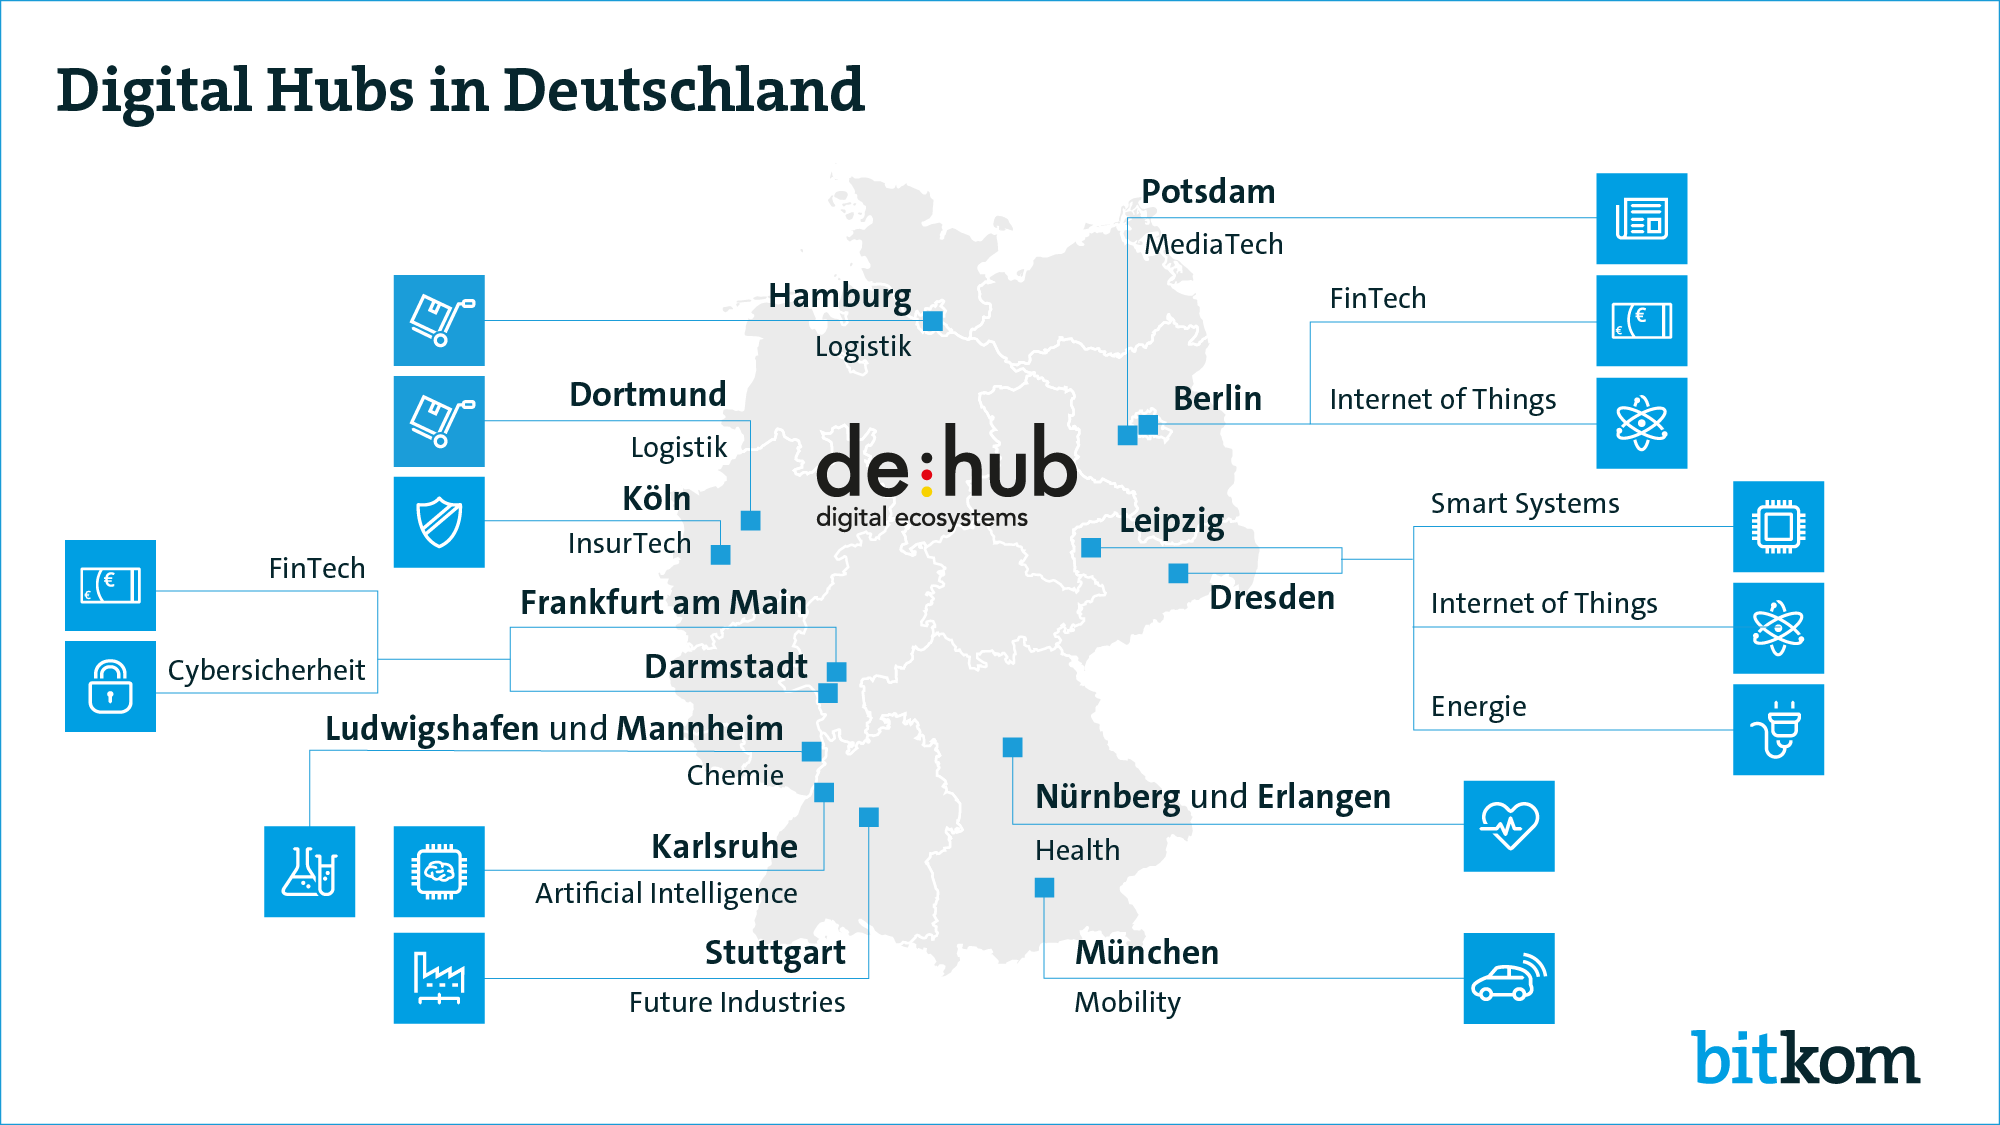 Digital Hubs in Deutschland (Qrafik: Bitkom)